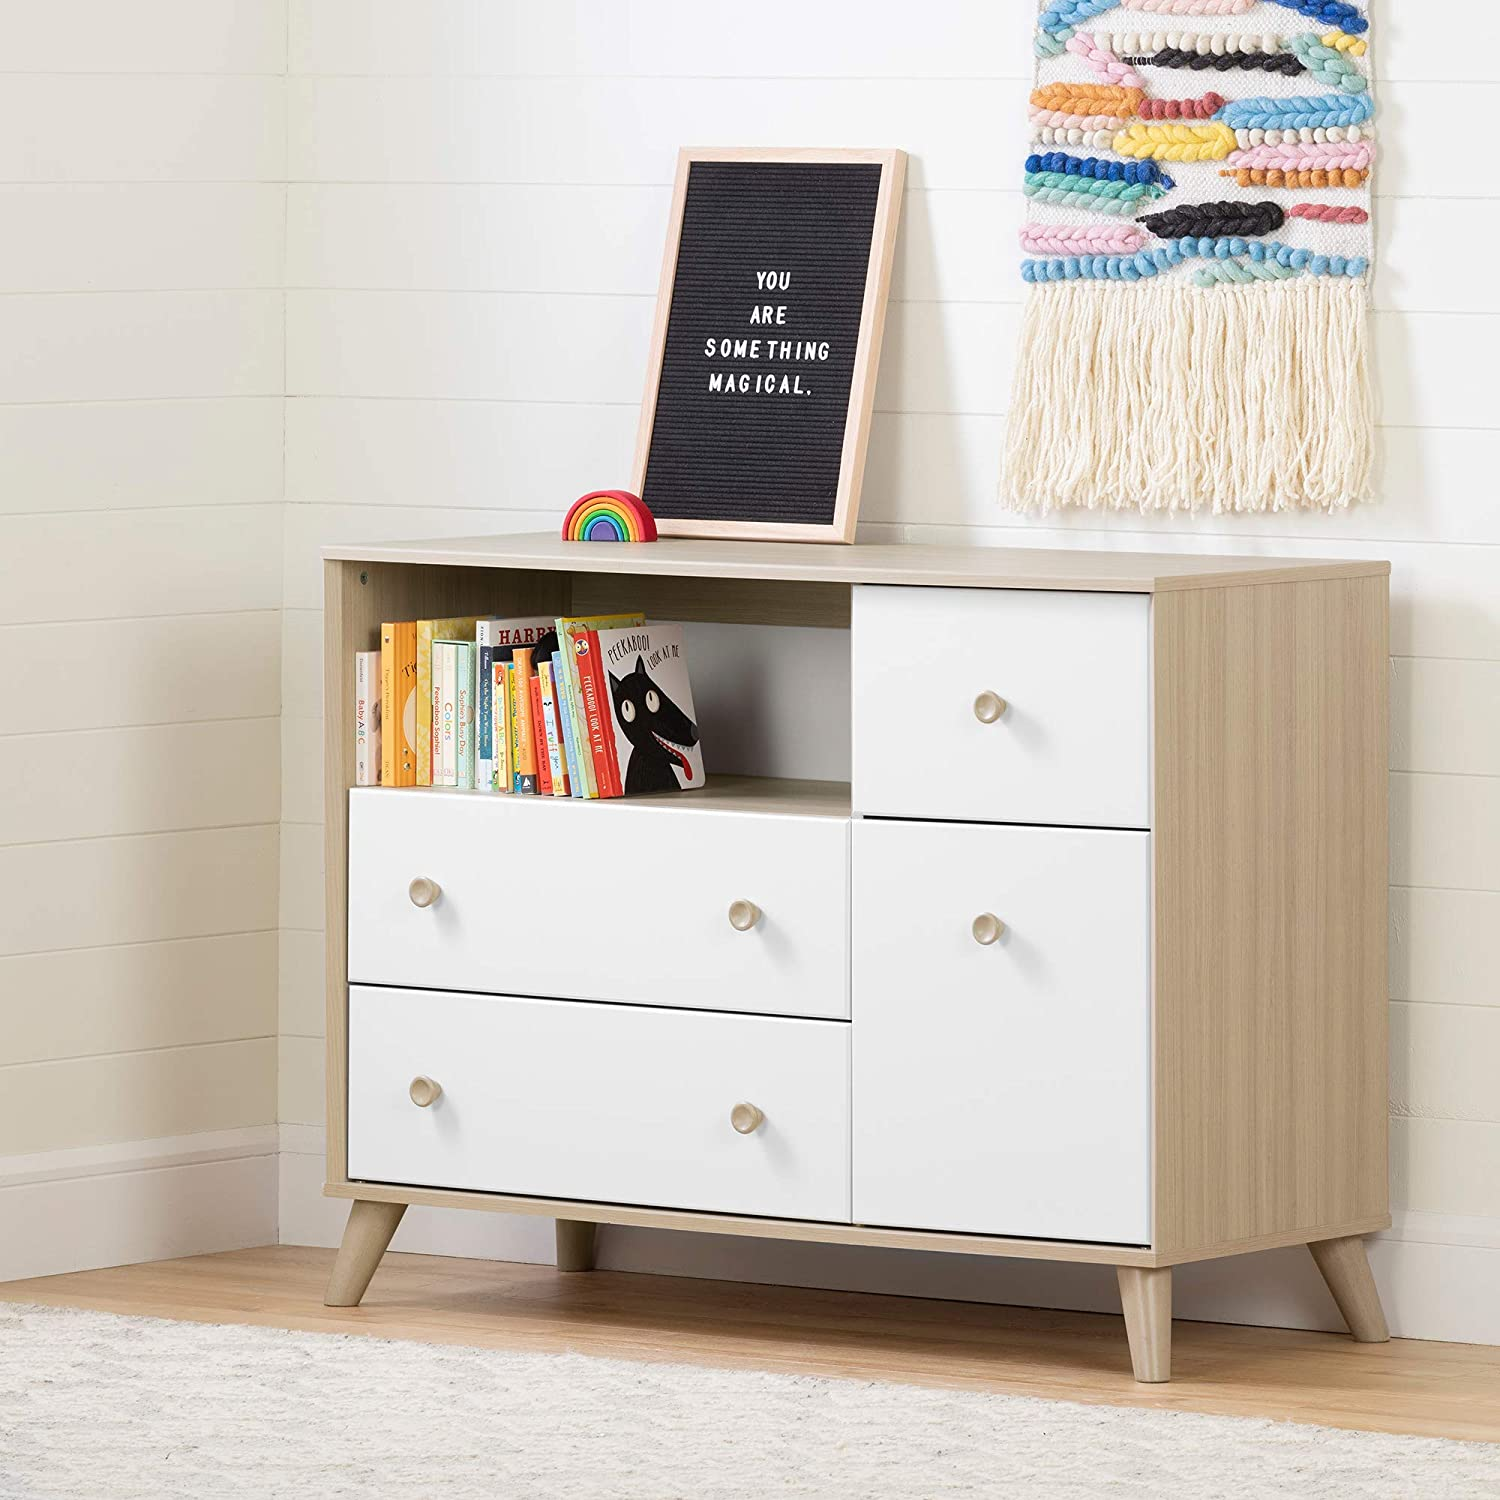 South Shore 12172 Yodi Changing Table with Drawers-Soft Elm and Pure White